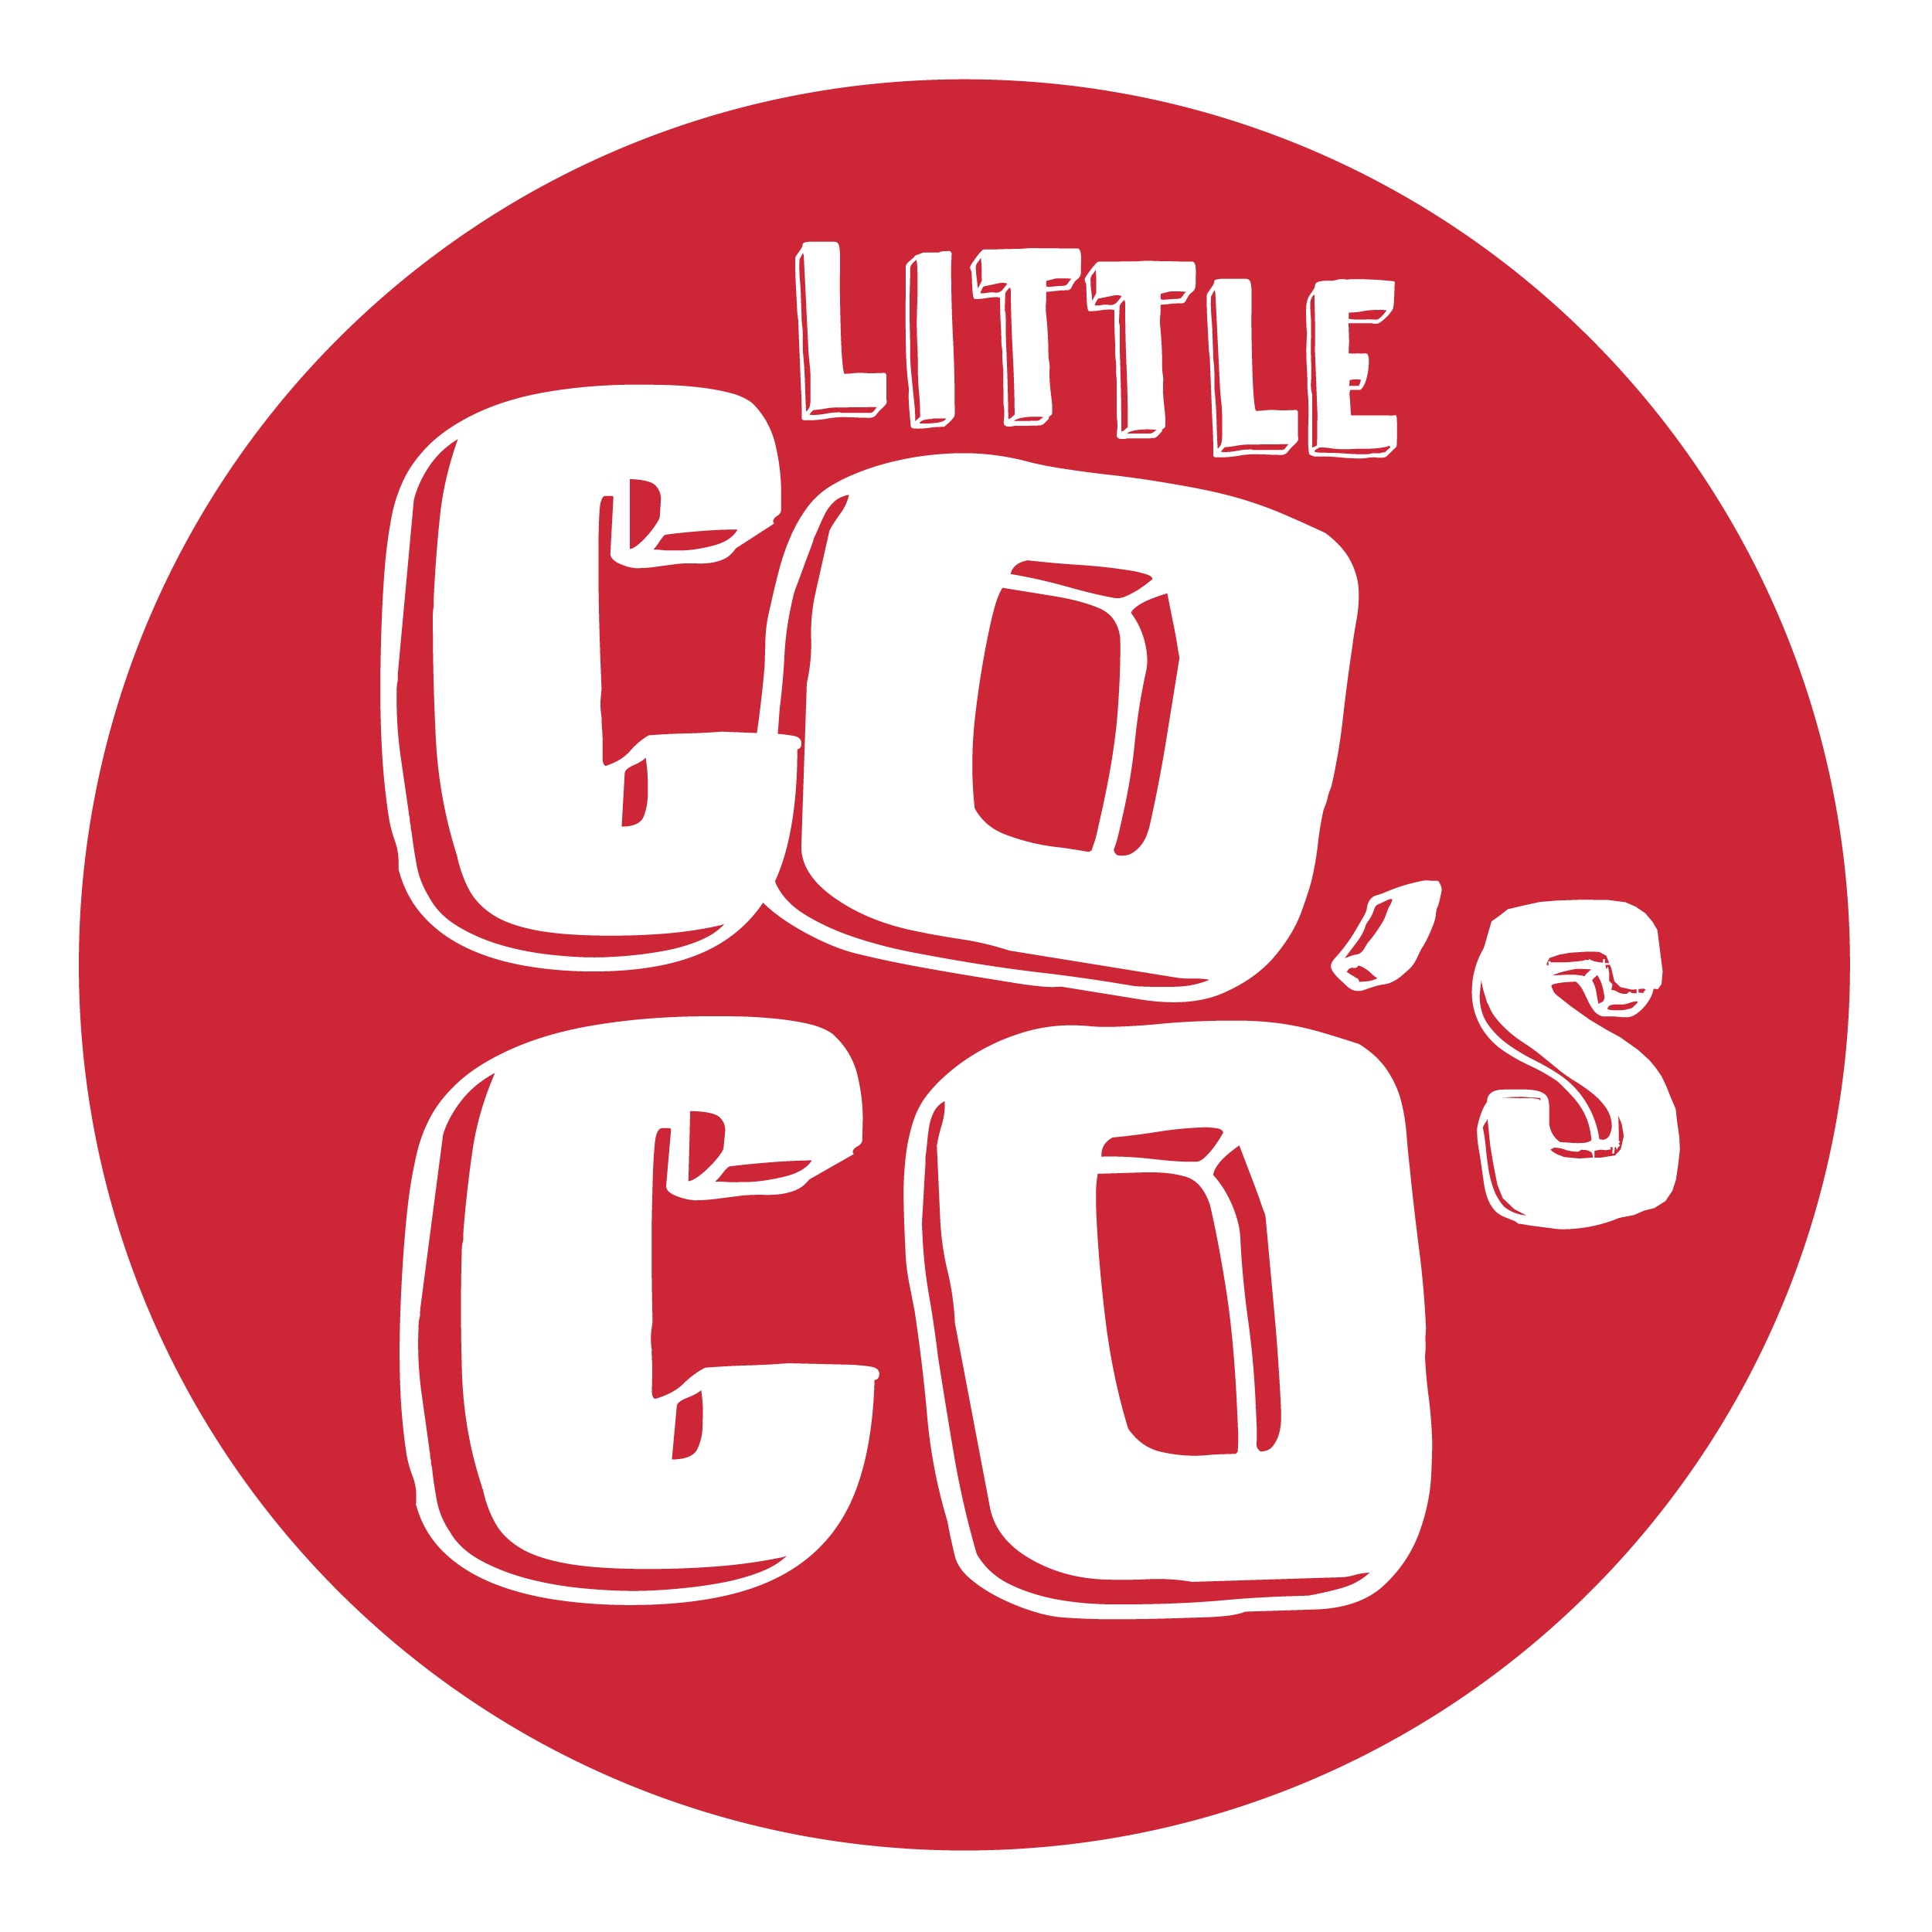 Little Coco's.png